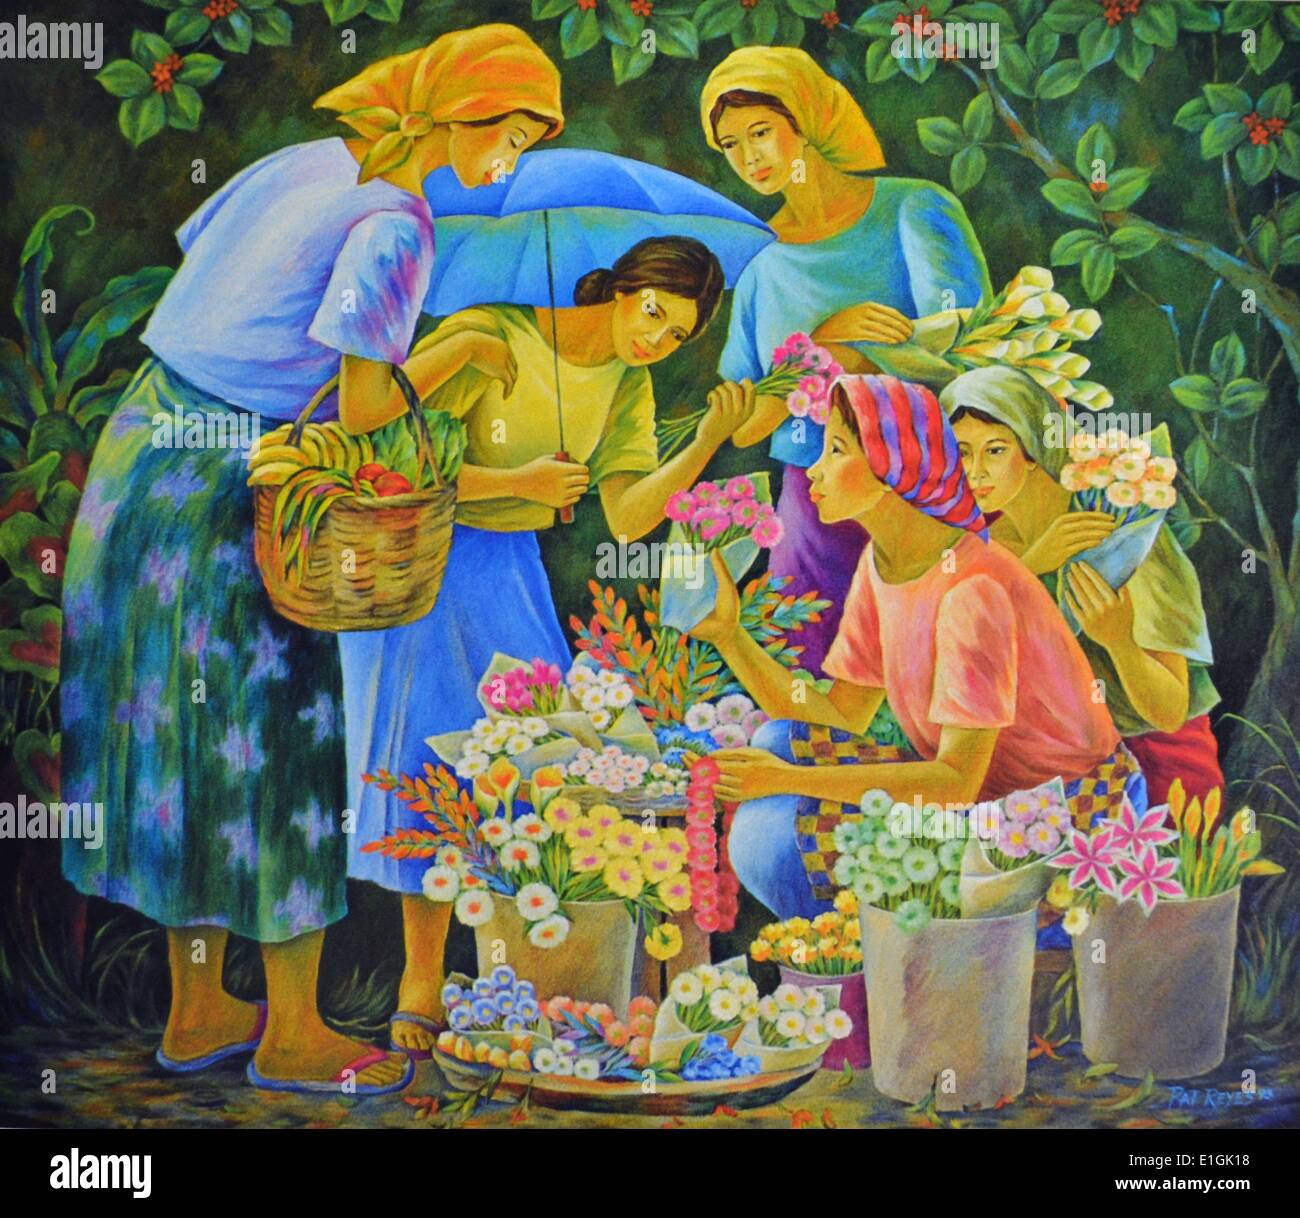 Pat Reyes, Young Lady Vendor, 1993.  Oil on canvas. - Stock Image